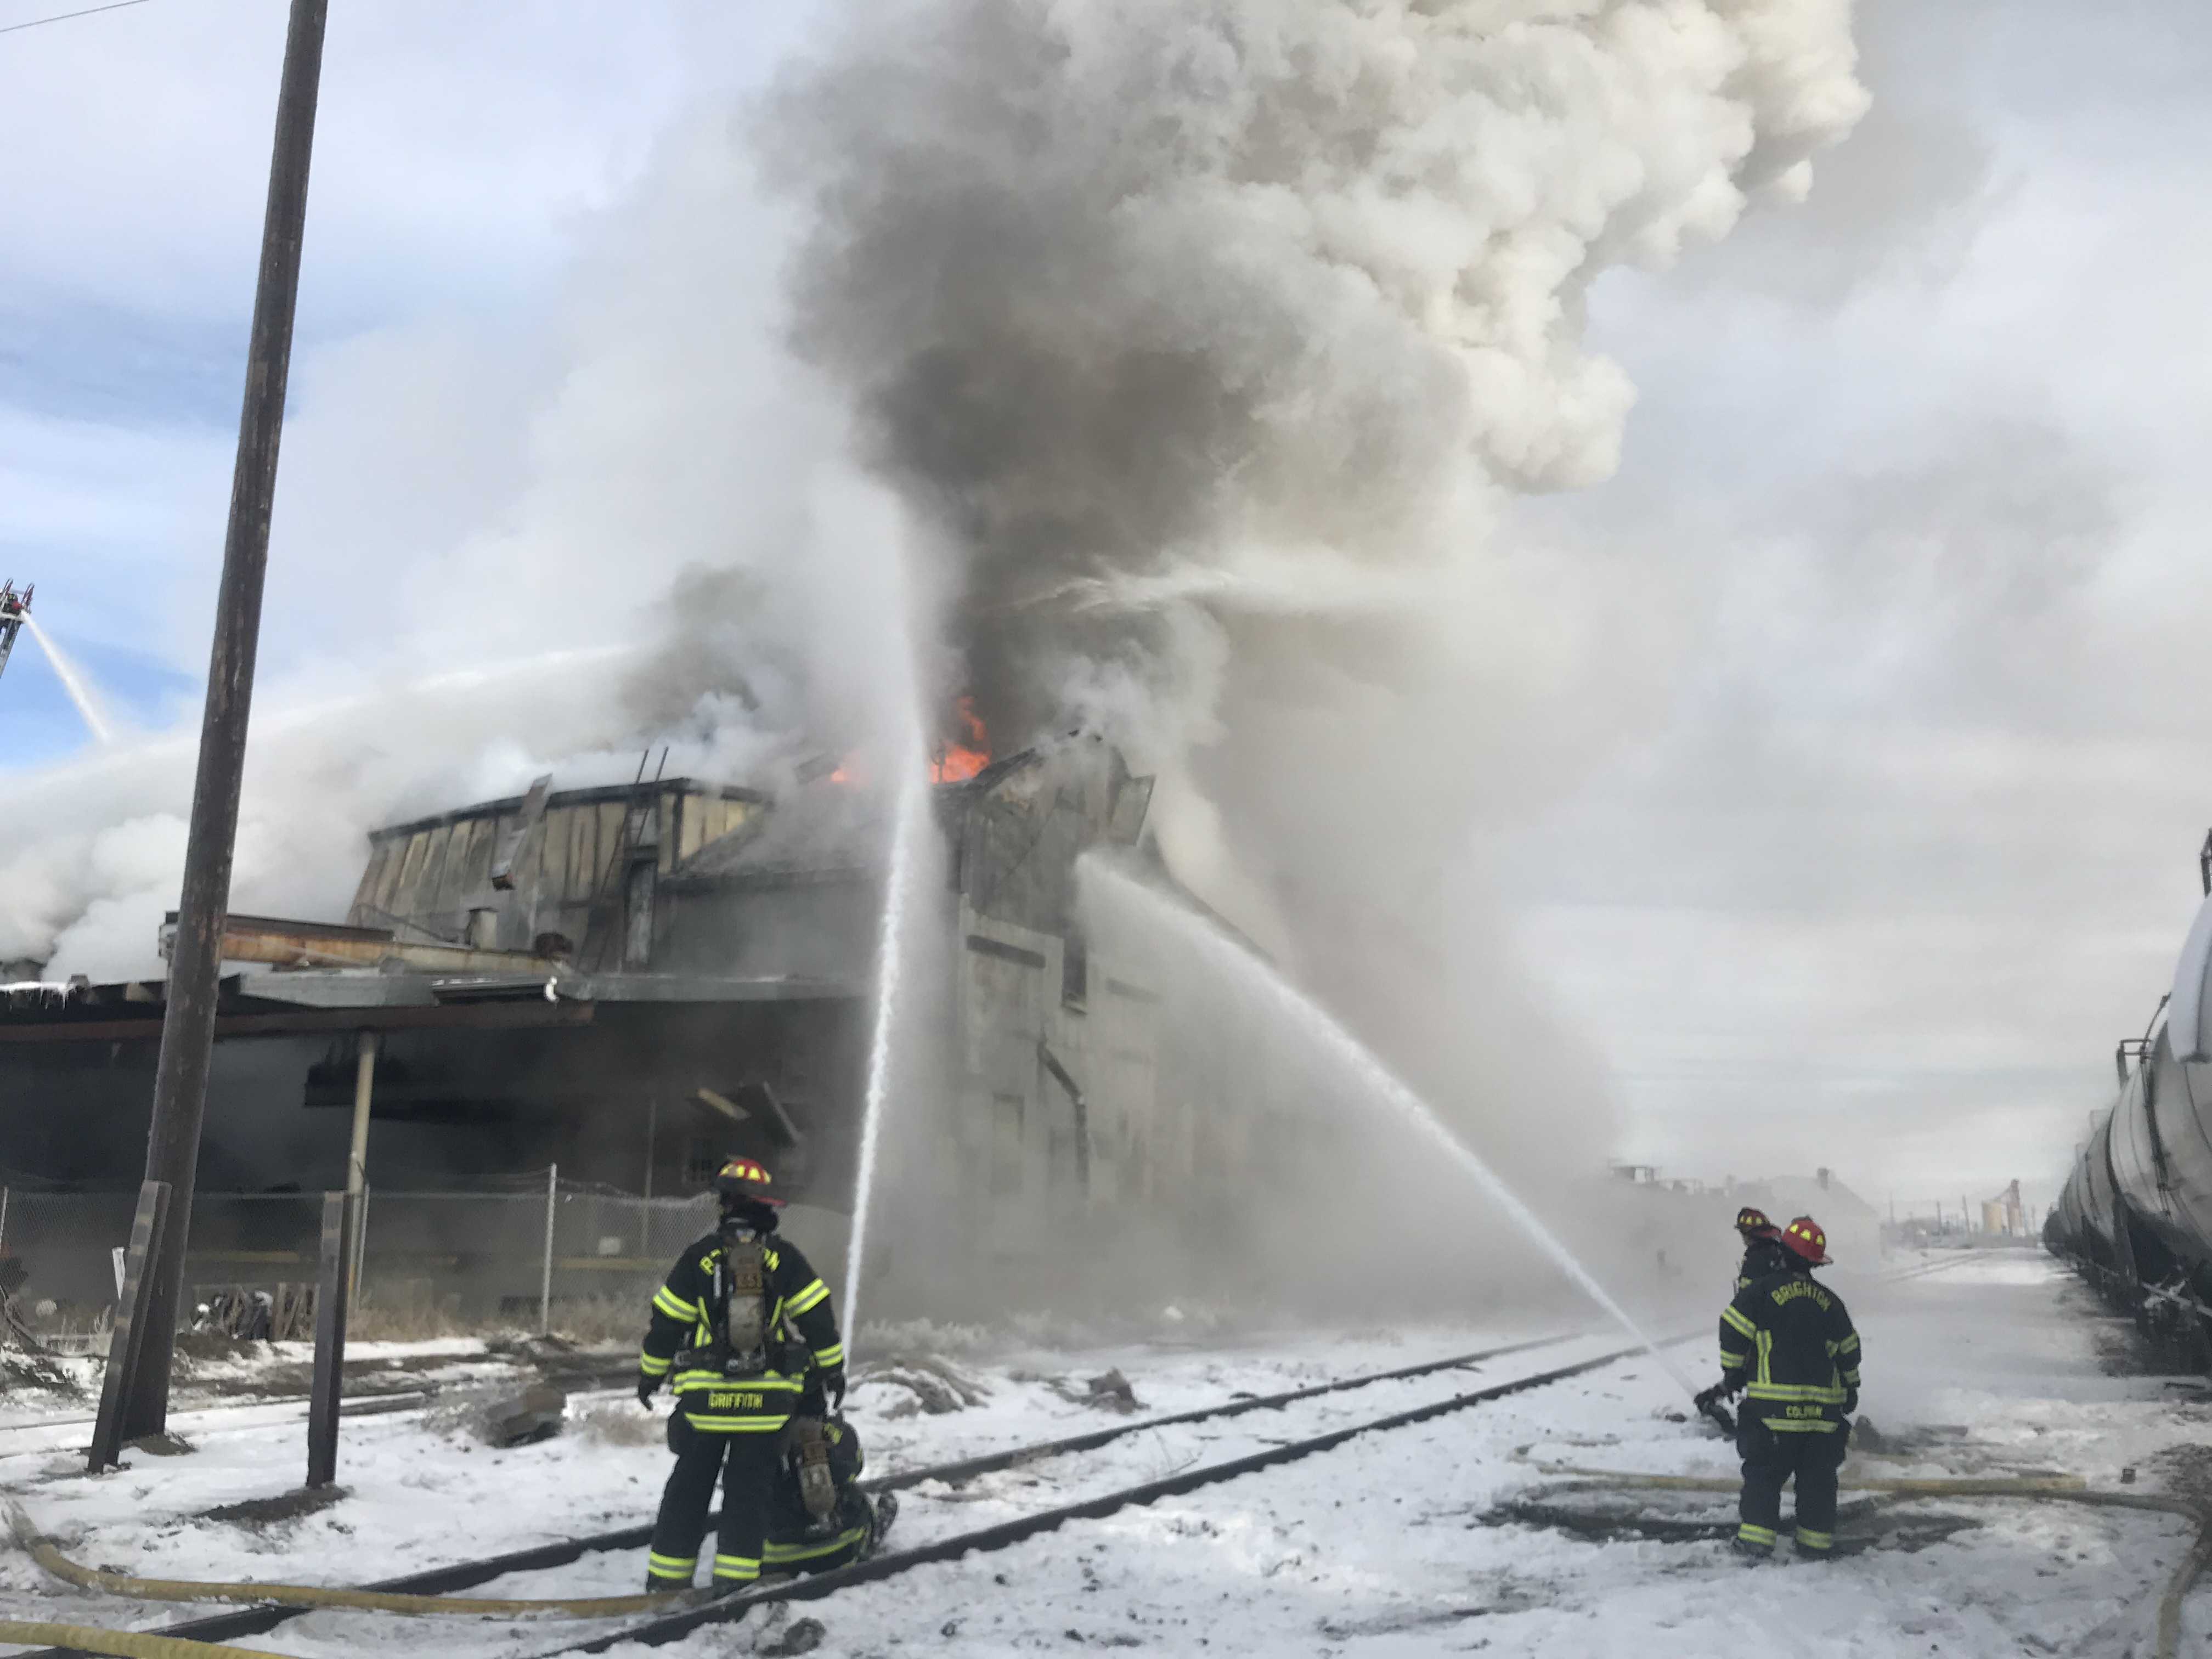 North Main Fire